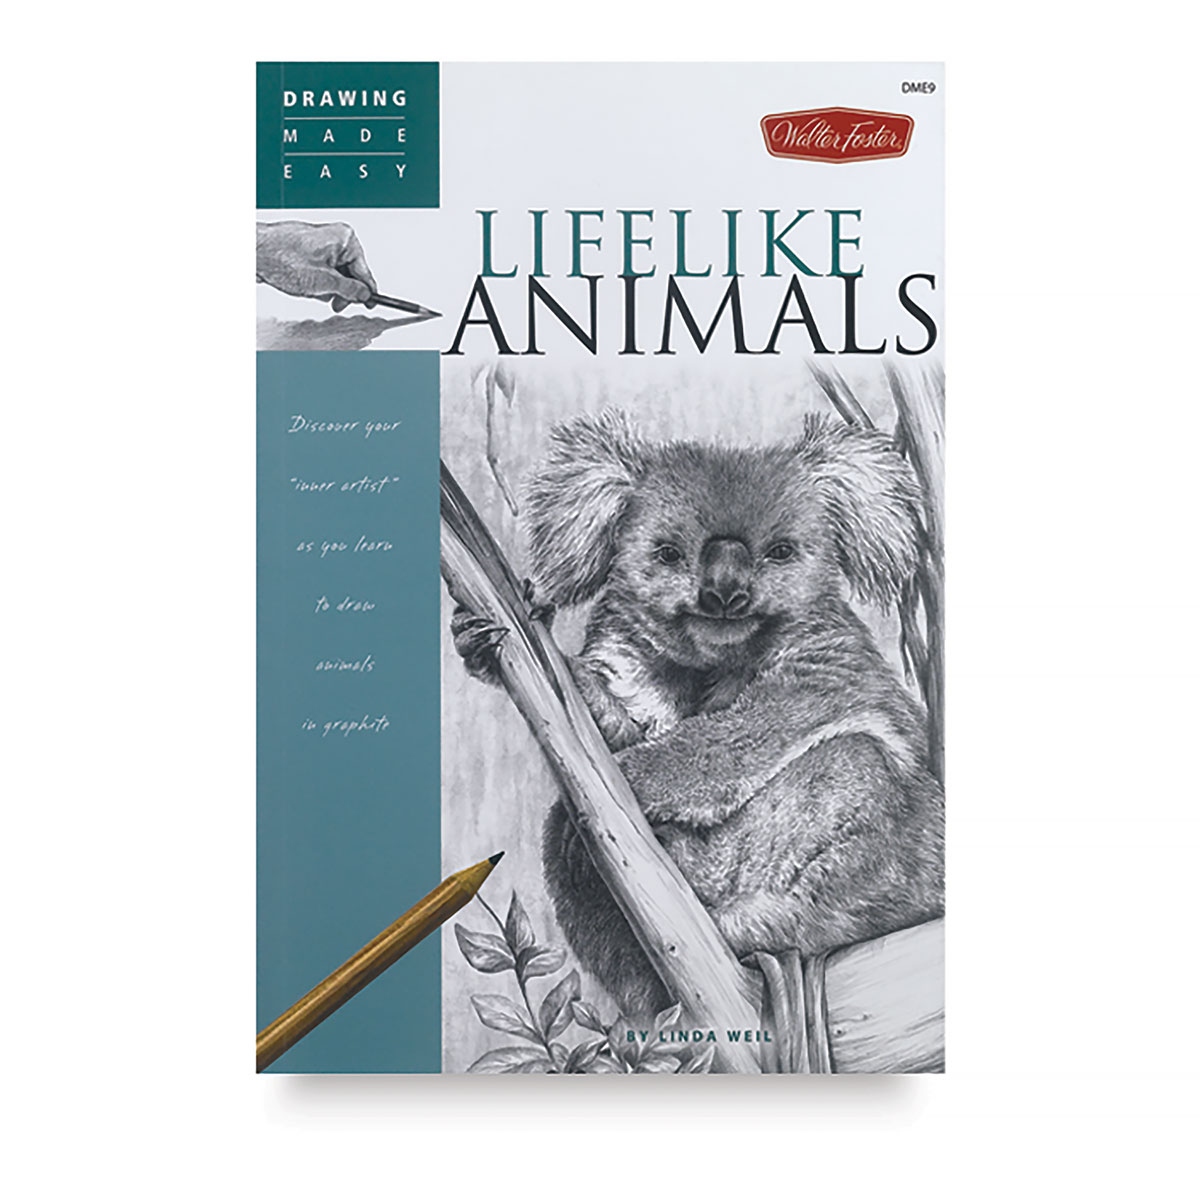 Walter Foster Drawing Made Easy: Lifelike Animals